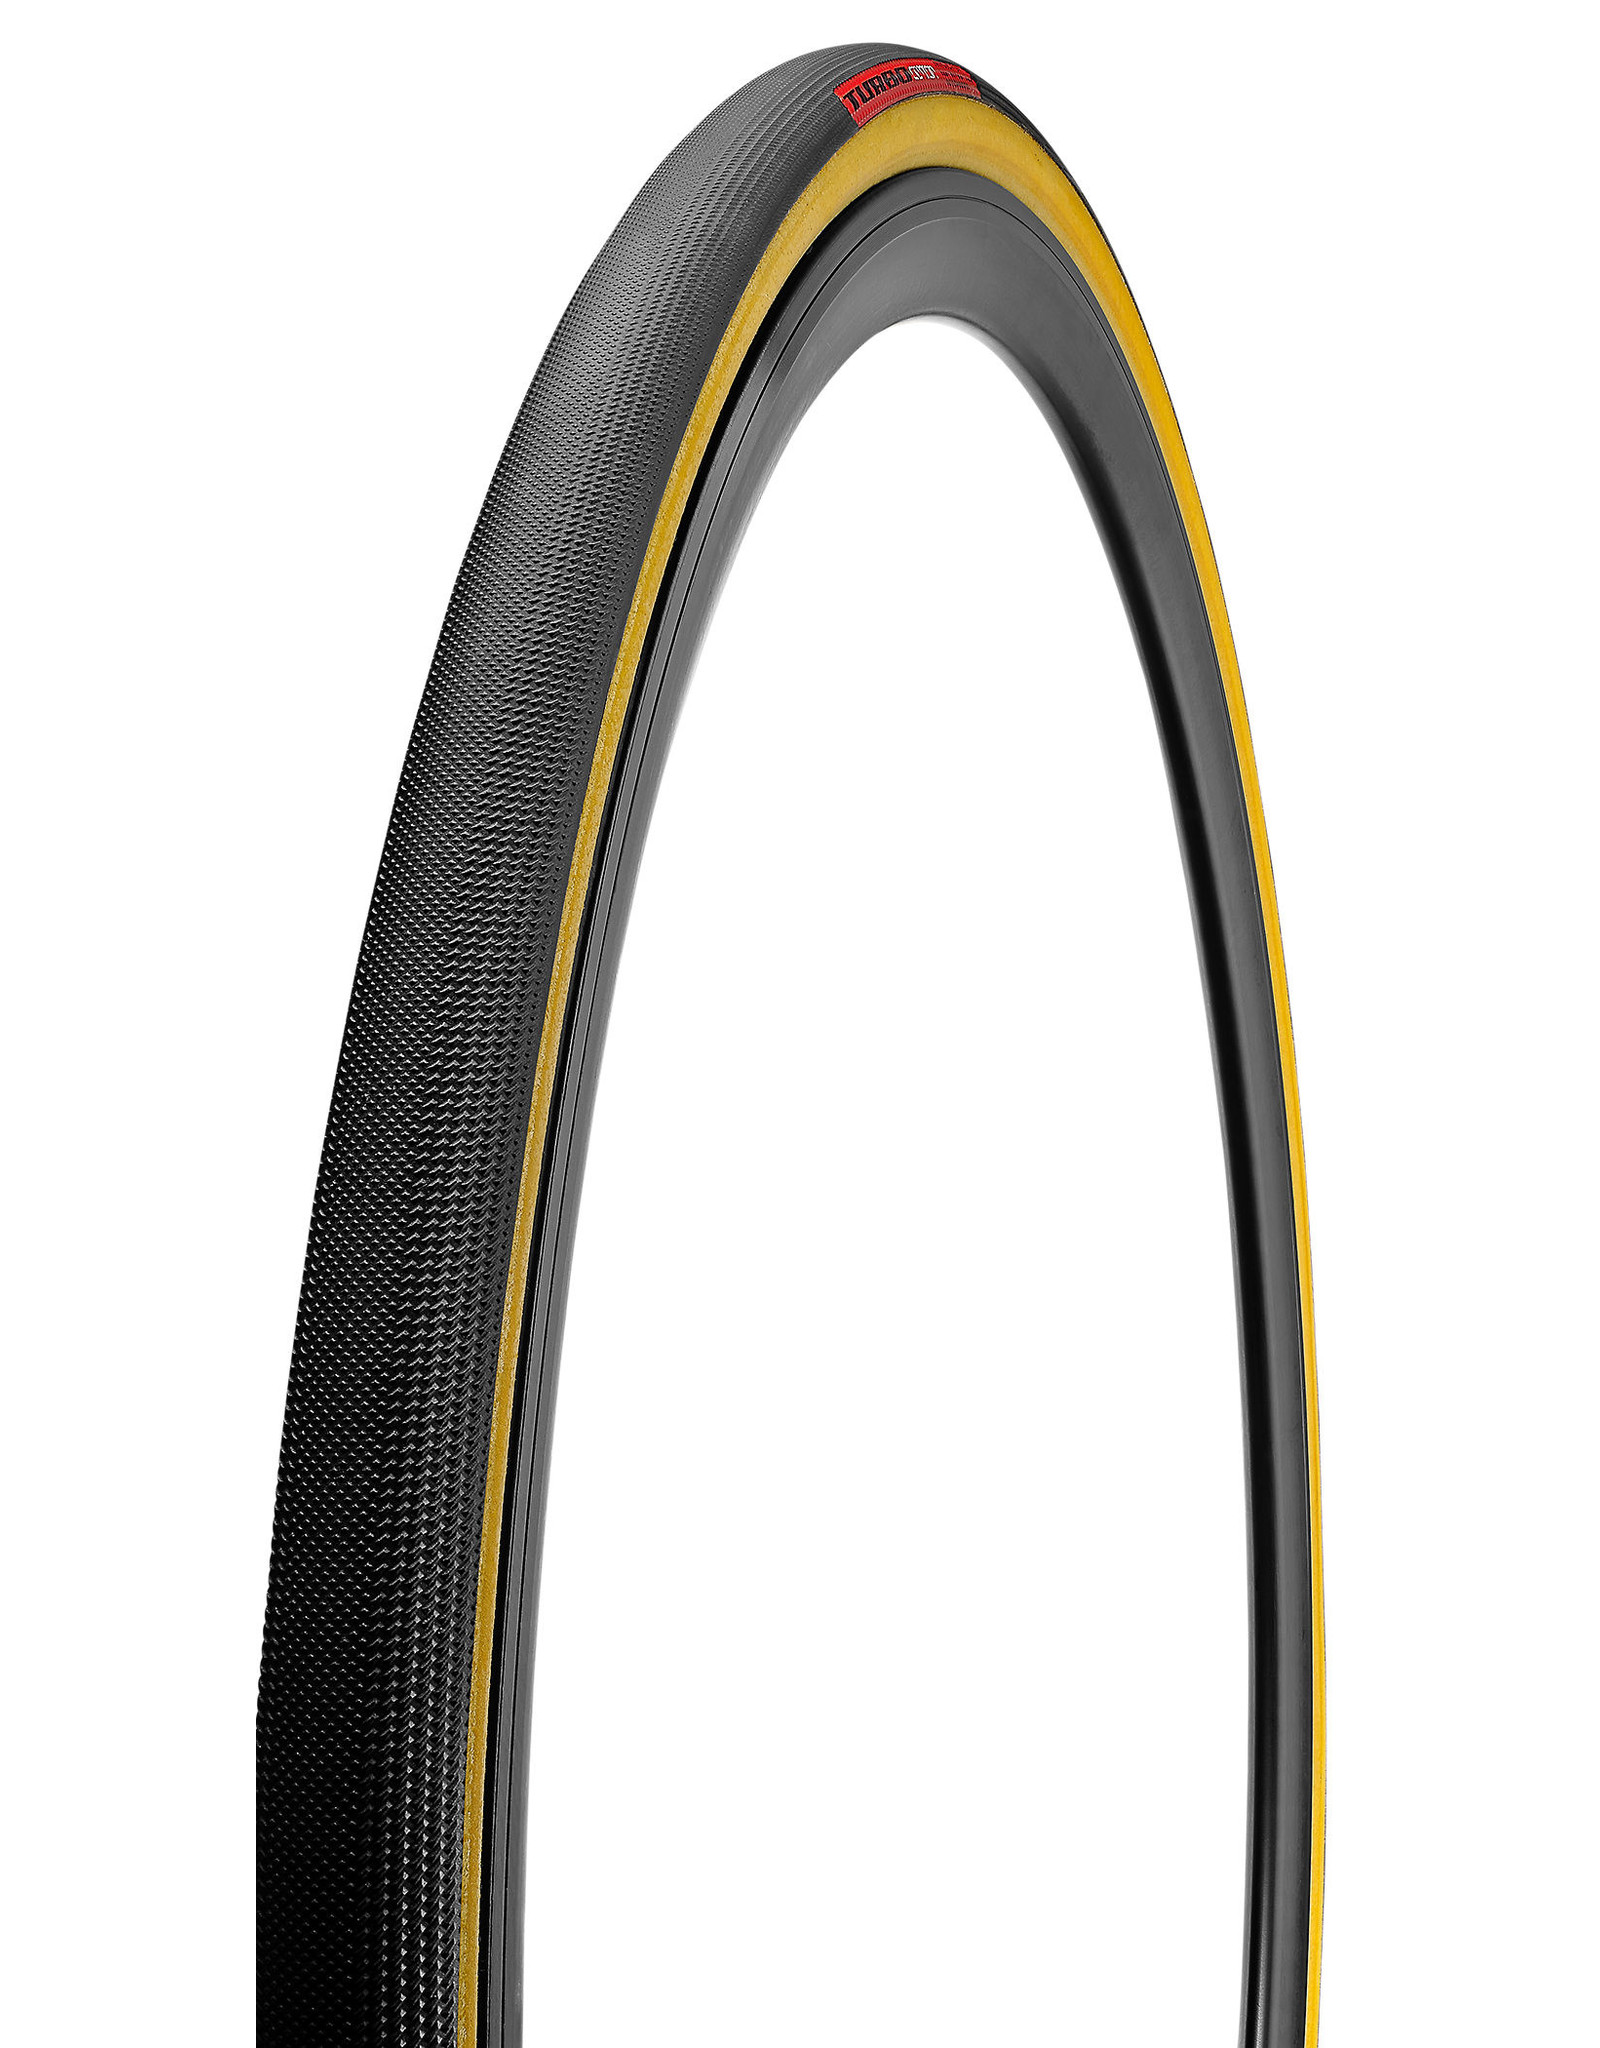 SPECIALIZED TURBO COTTON TIRE HELL OF THE NORTH 28C